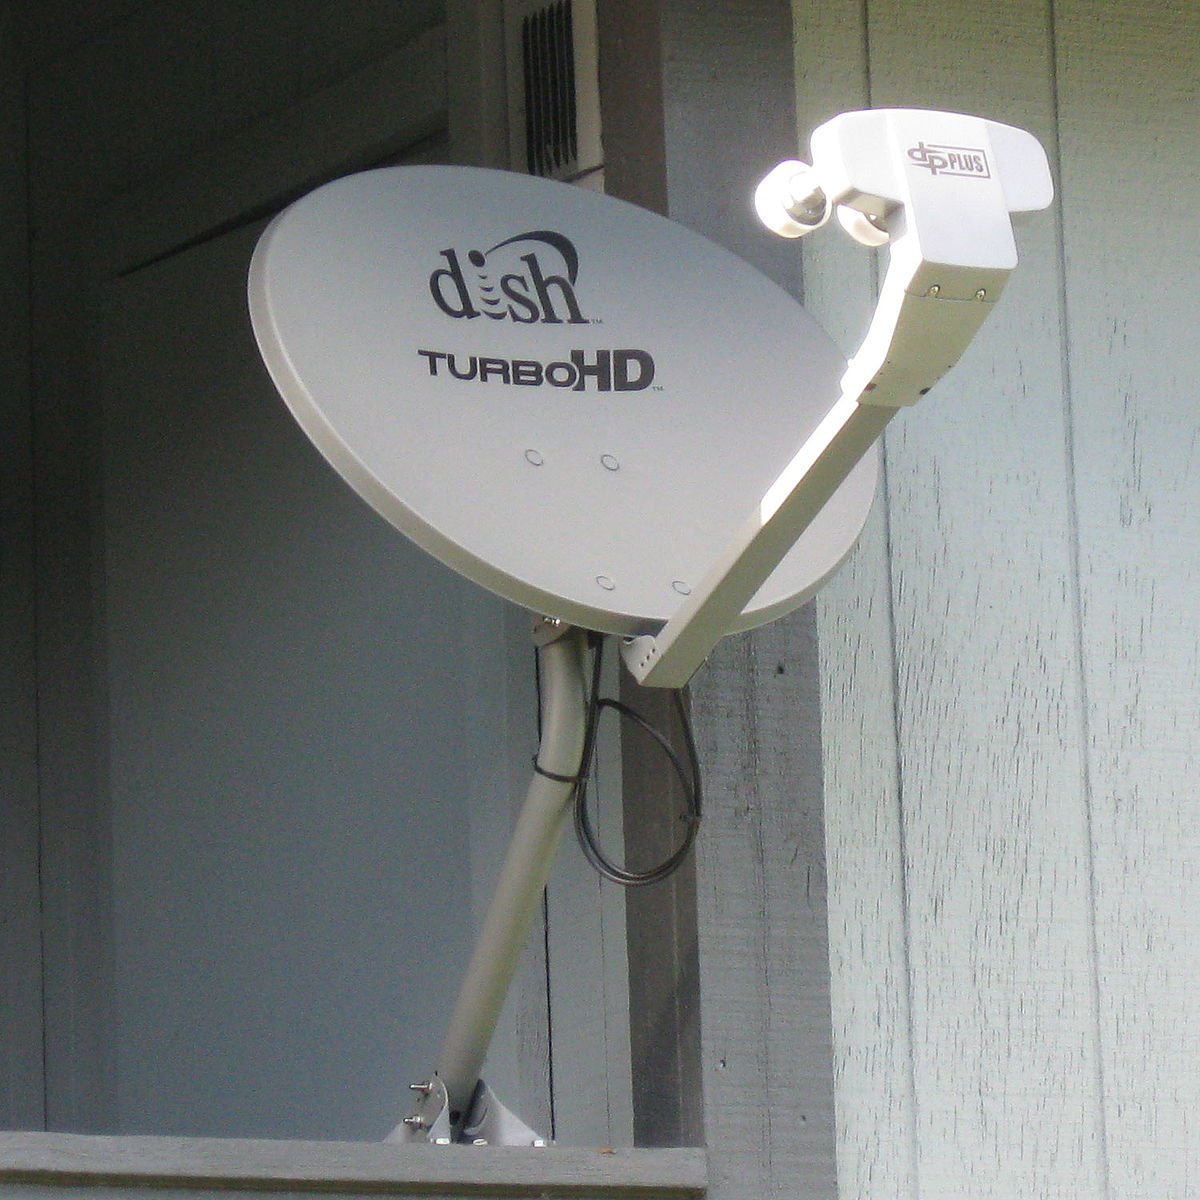 how to connect a vcr to a dish satellite tv